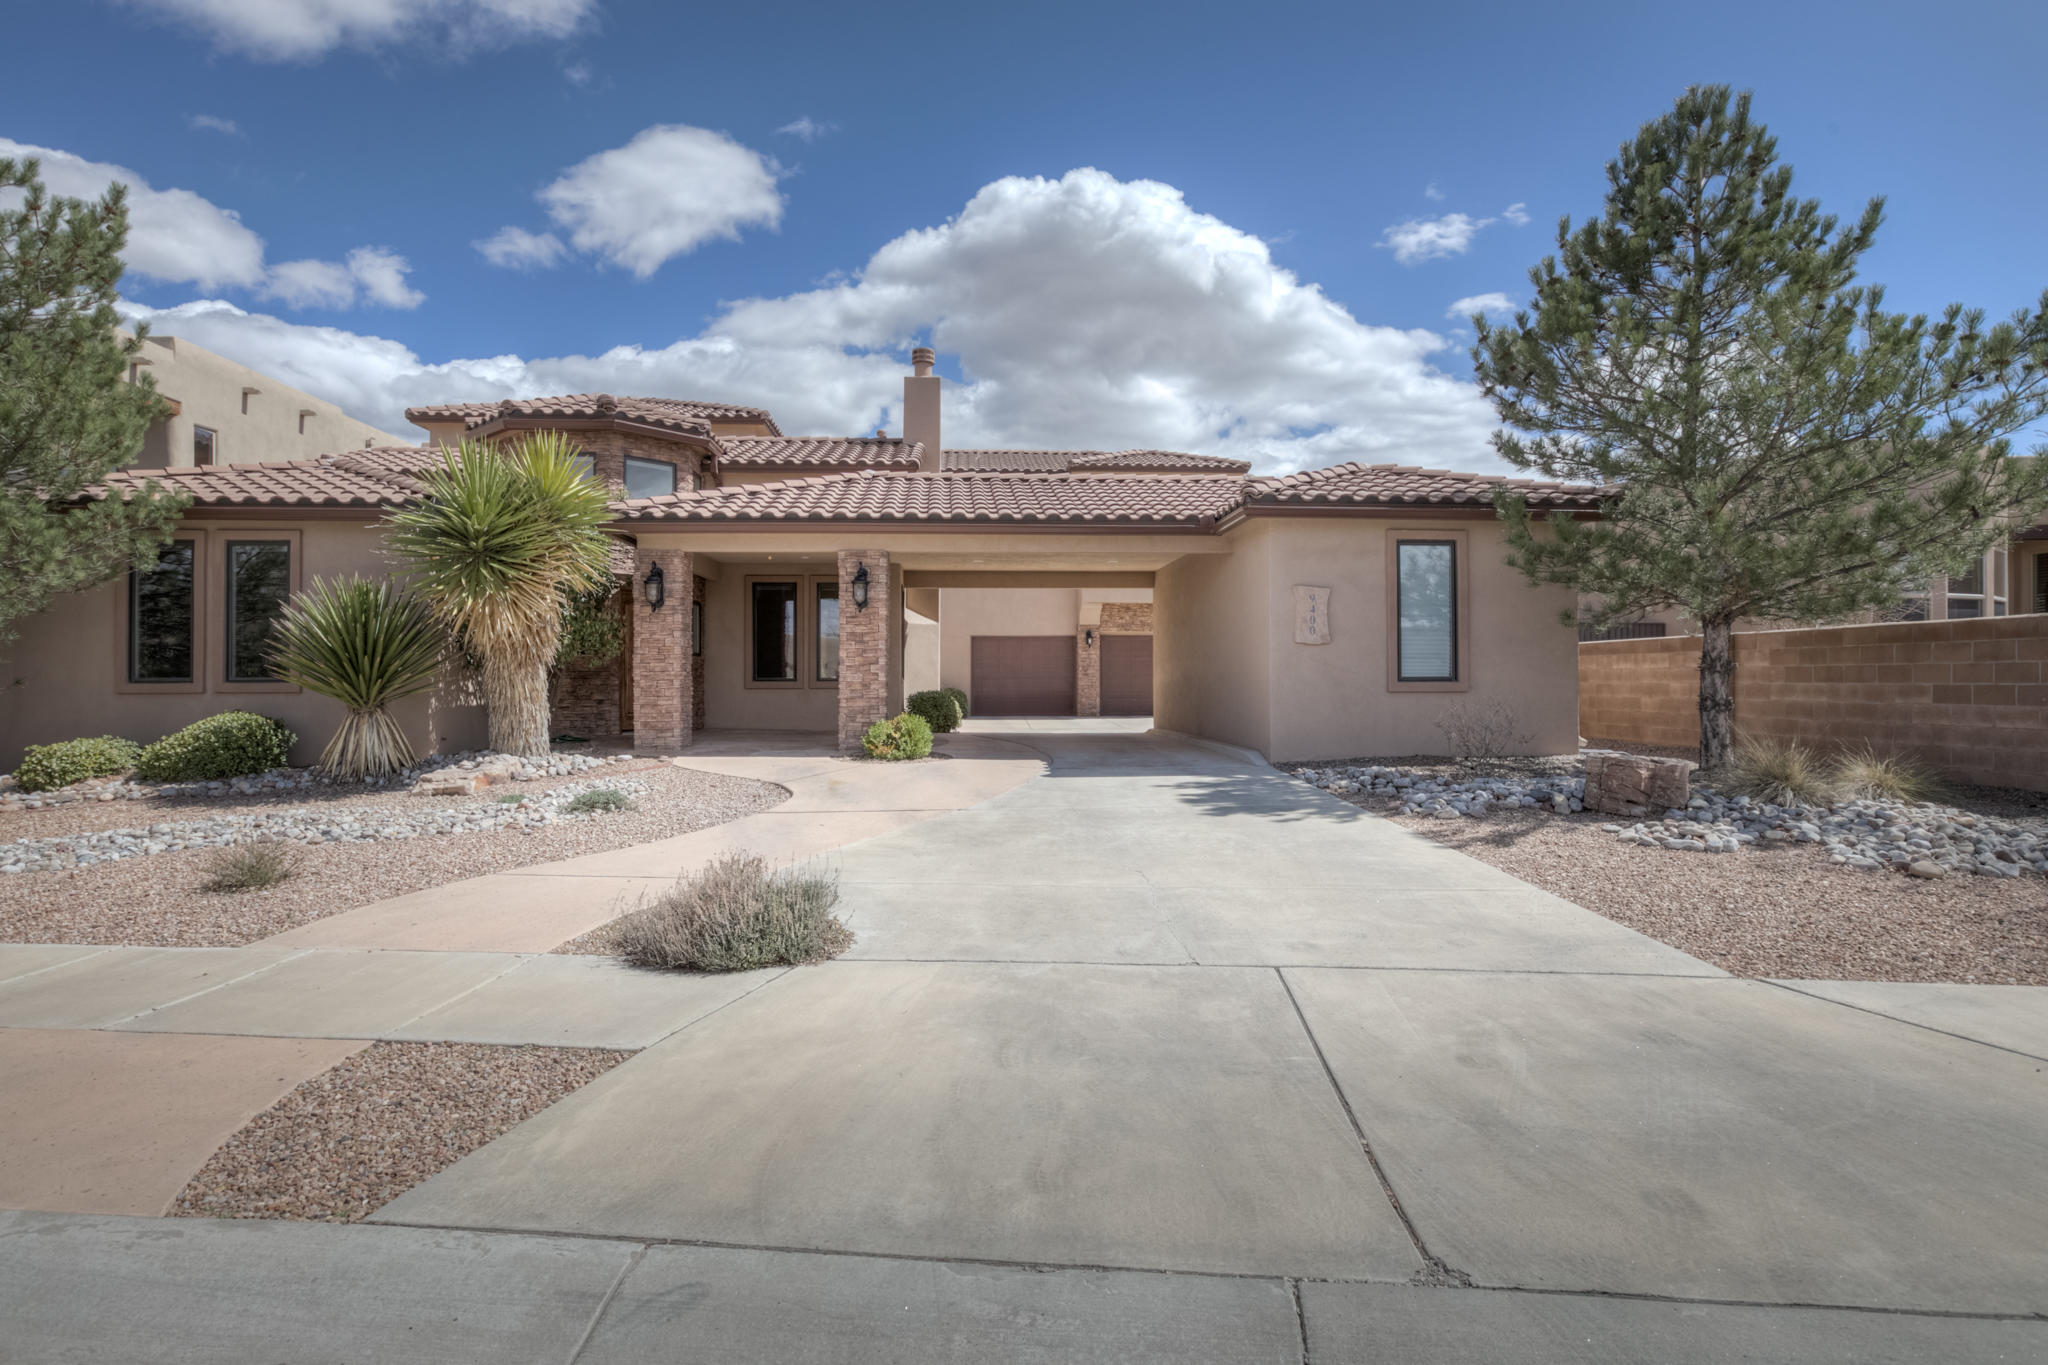 9400 BEAR MOUNTAIN Trail NE Property Photo - Albuquerque, NM real estate listing